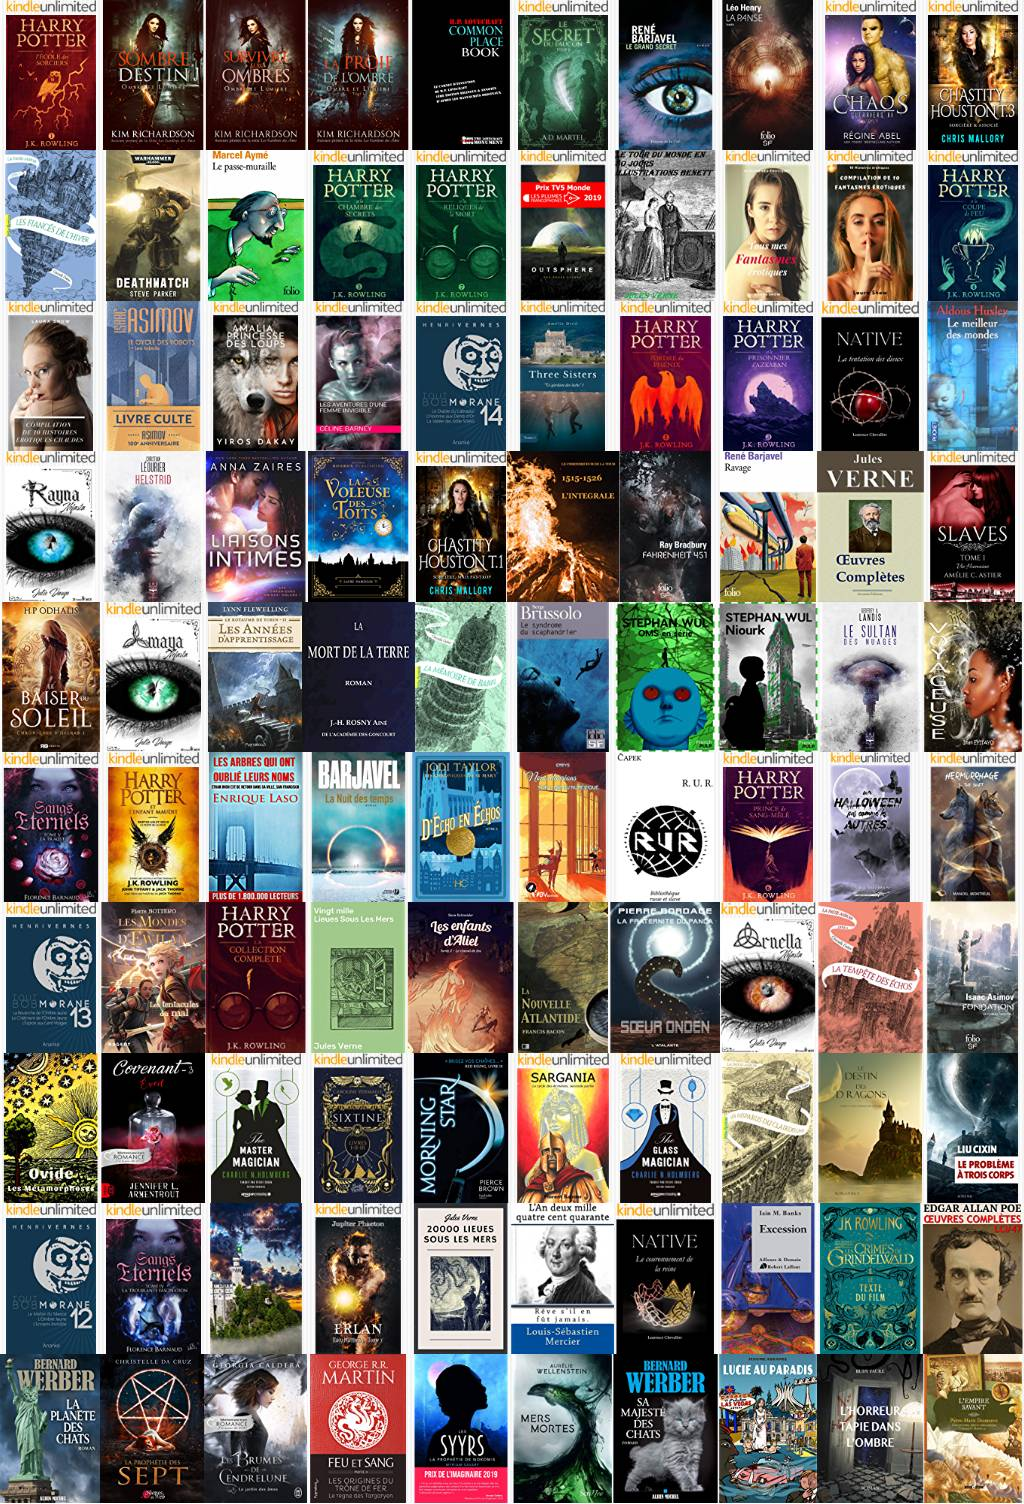 Horror: Fantasy, Horror & Science Fiction Category Chart Preview